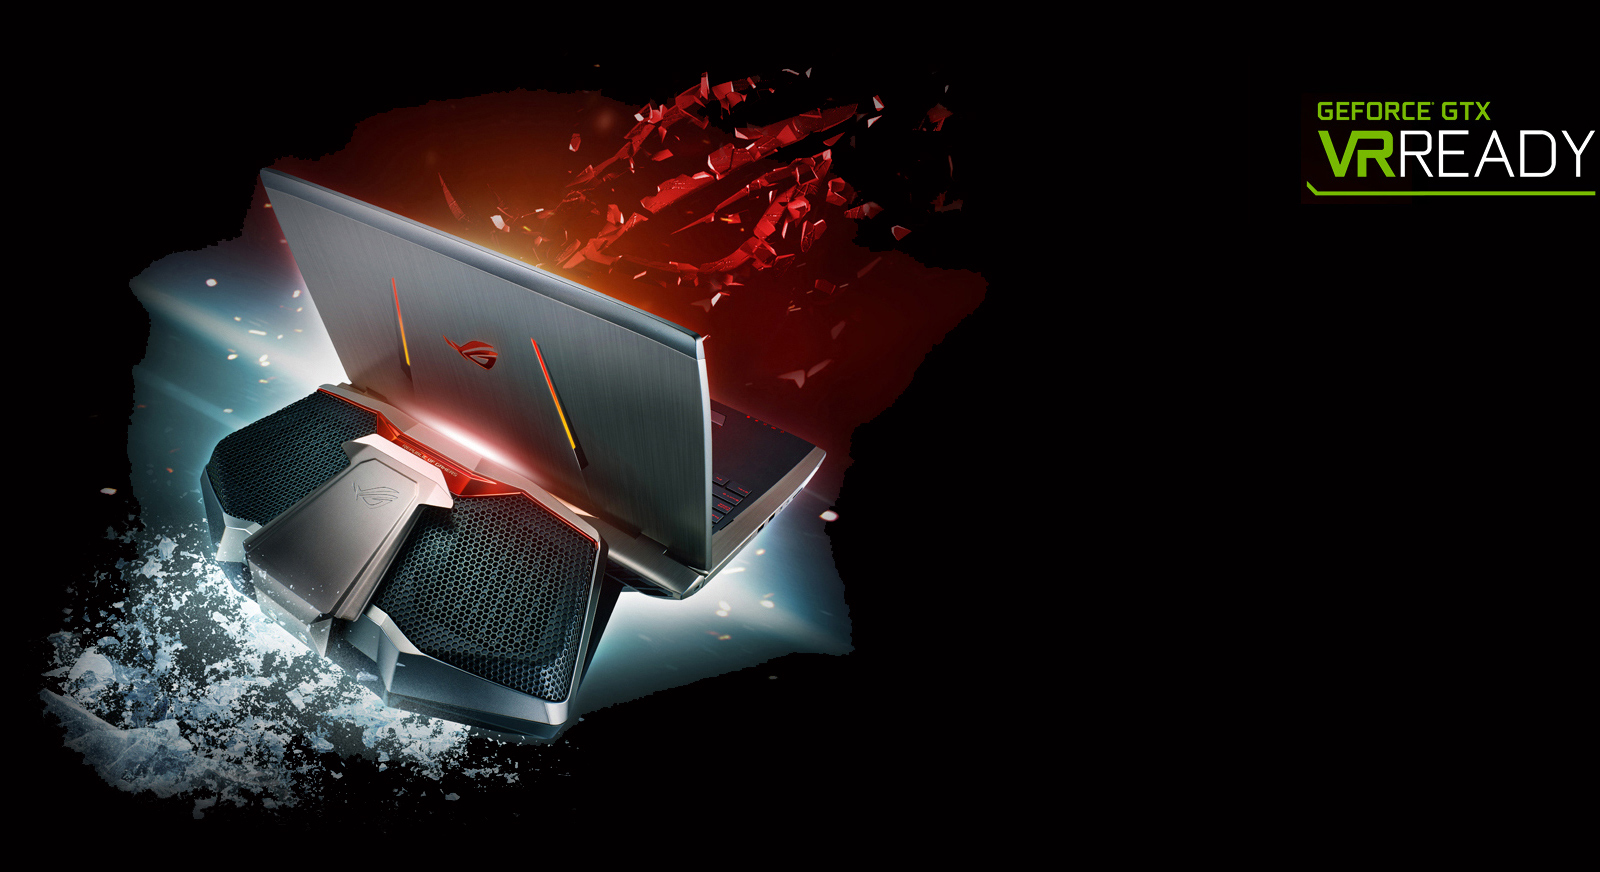 "Descriere Laptop ASUS ROG GX700VO-GC009T 17.3"" FHD, Intel® Core™ i7-6820HK pana la 3.6GHz, 32GB, 2 x 256GB SSD, nVIDIA GeForce GTX 980 8GB, Windows 10"